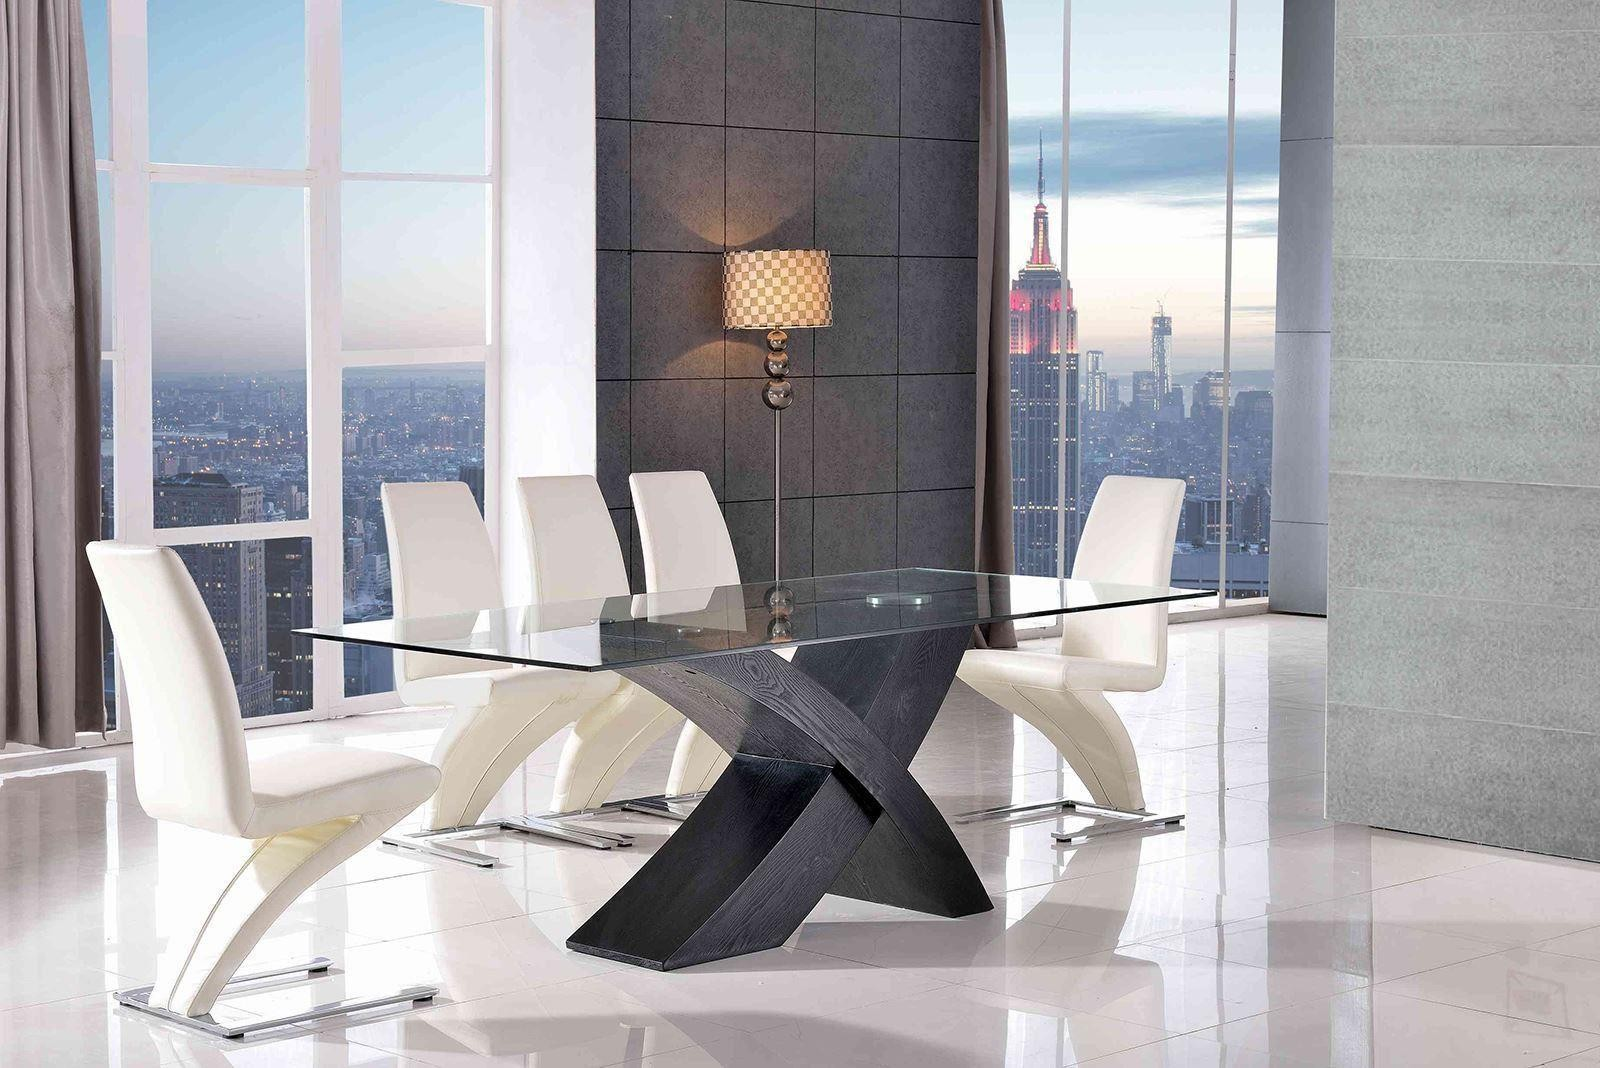 Valencia Black 200cm Wood and Glass Dining Table with 8 Zed Designer Dining Chairs [Ivory]